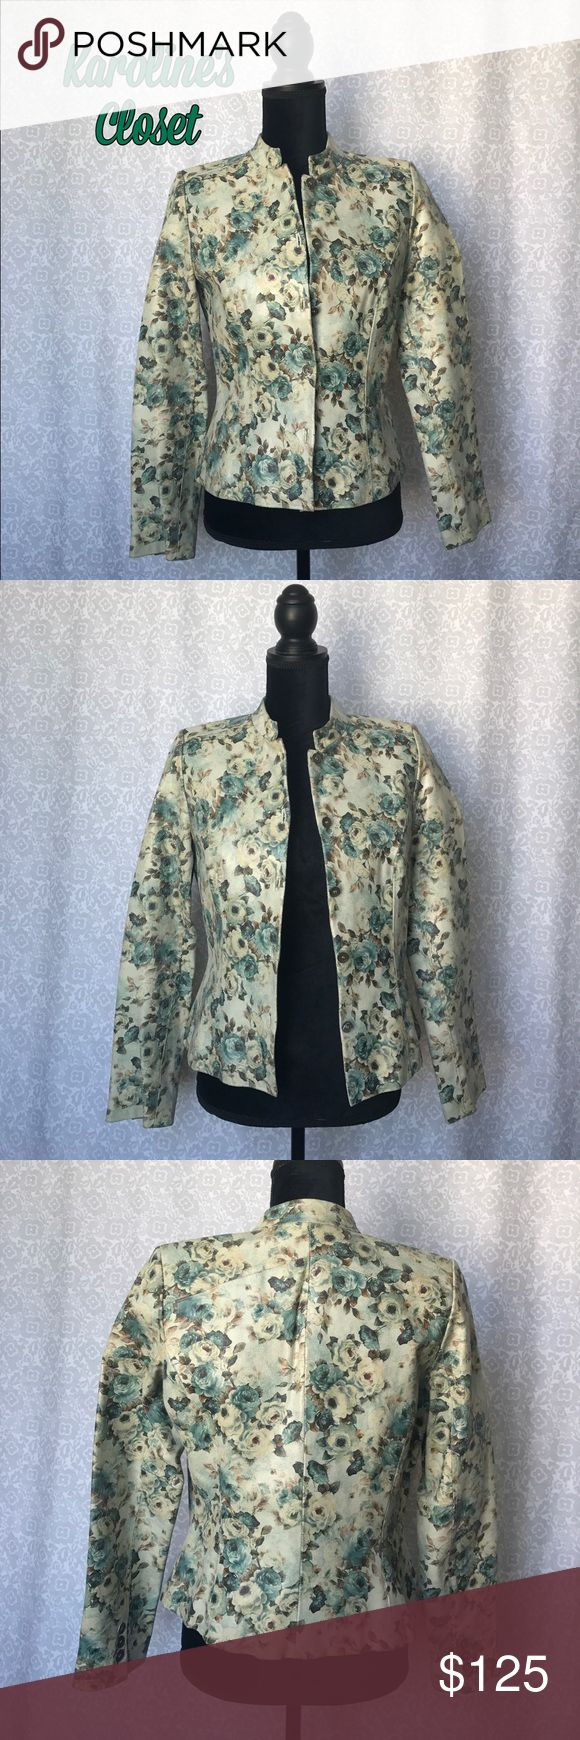 Leather Jacket with Blue and Tan Roses 100% Leather, distressed vintage inspired, women's small, Studio 512, comparable to Wilsons Leather, leather jacket with blue and tan roses. Small Gorgeous jacket and excellent condition, only flaw is a small run on the inside lining as pictured!! Studio 512 Jackets & Coats